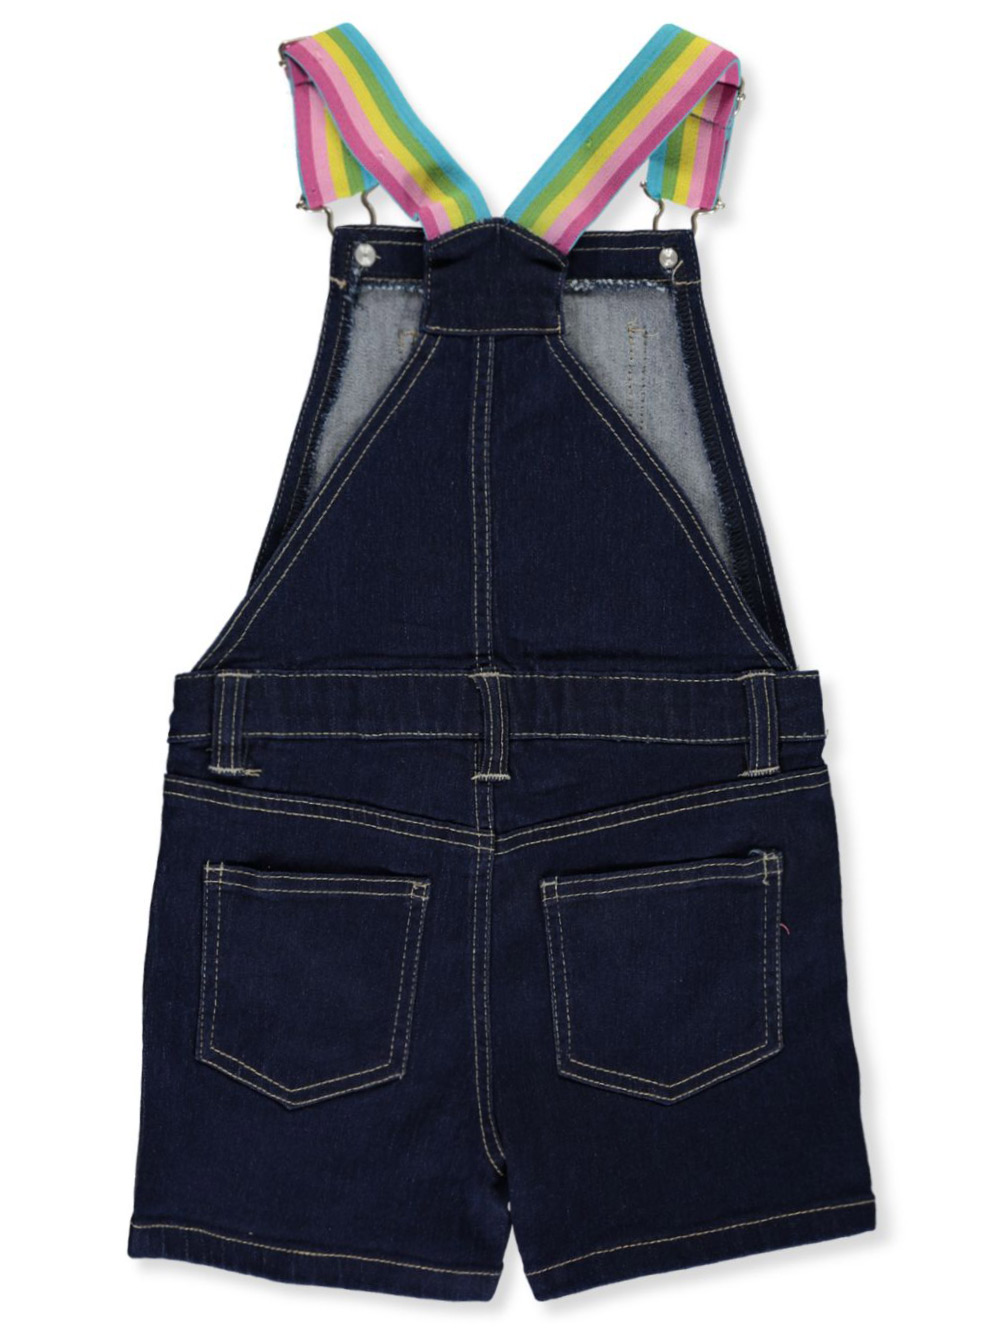 dELiAs Girls Denim Shortalls with Adjustable Straps